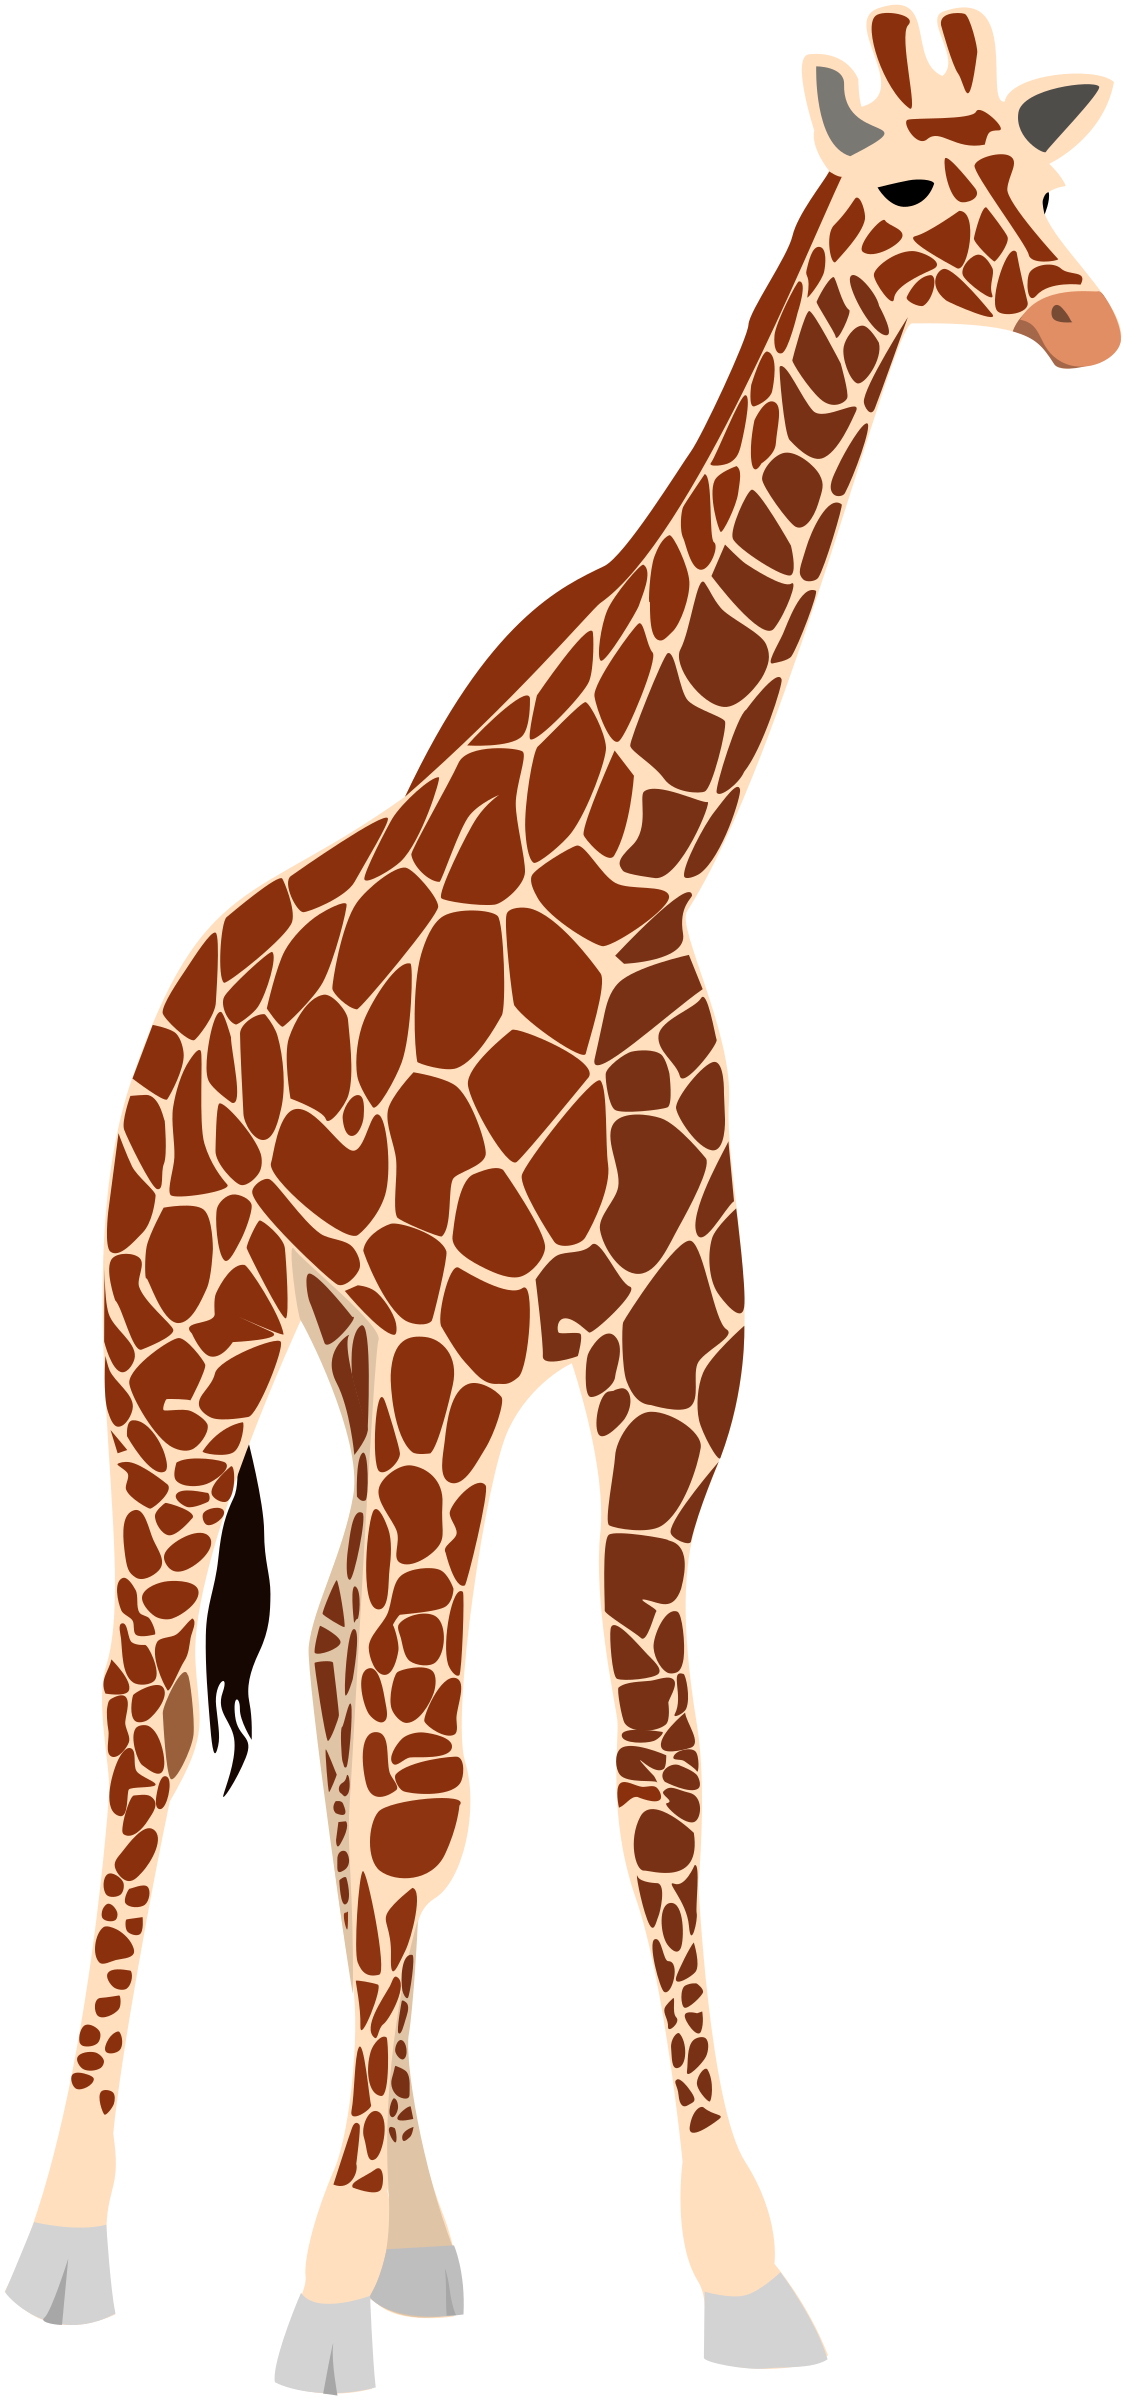 another giraffe by ha1flosse